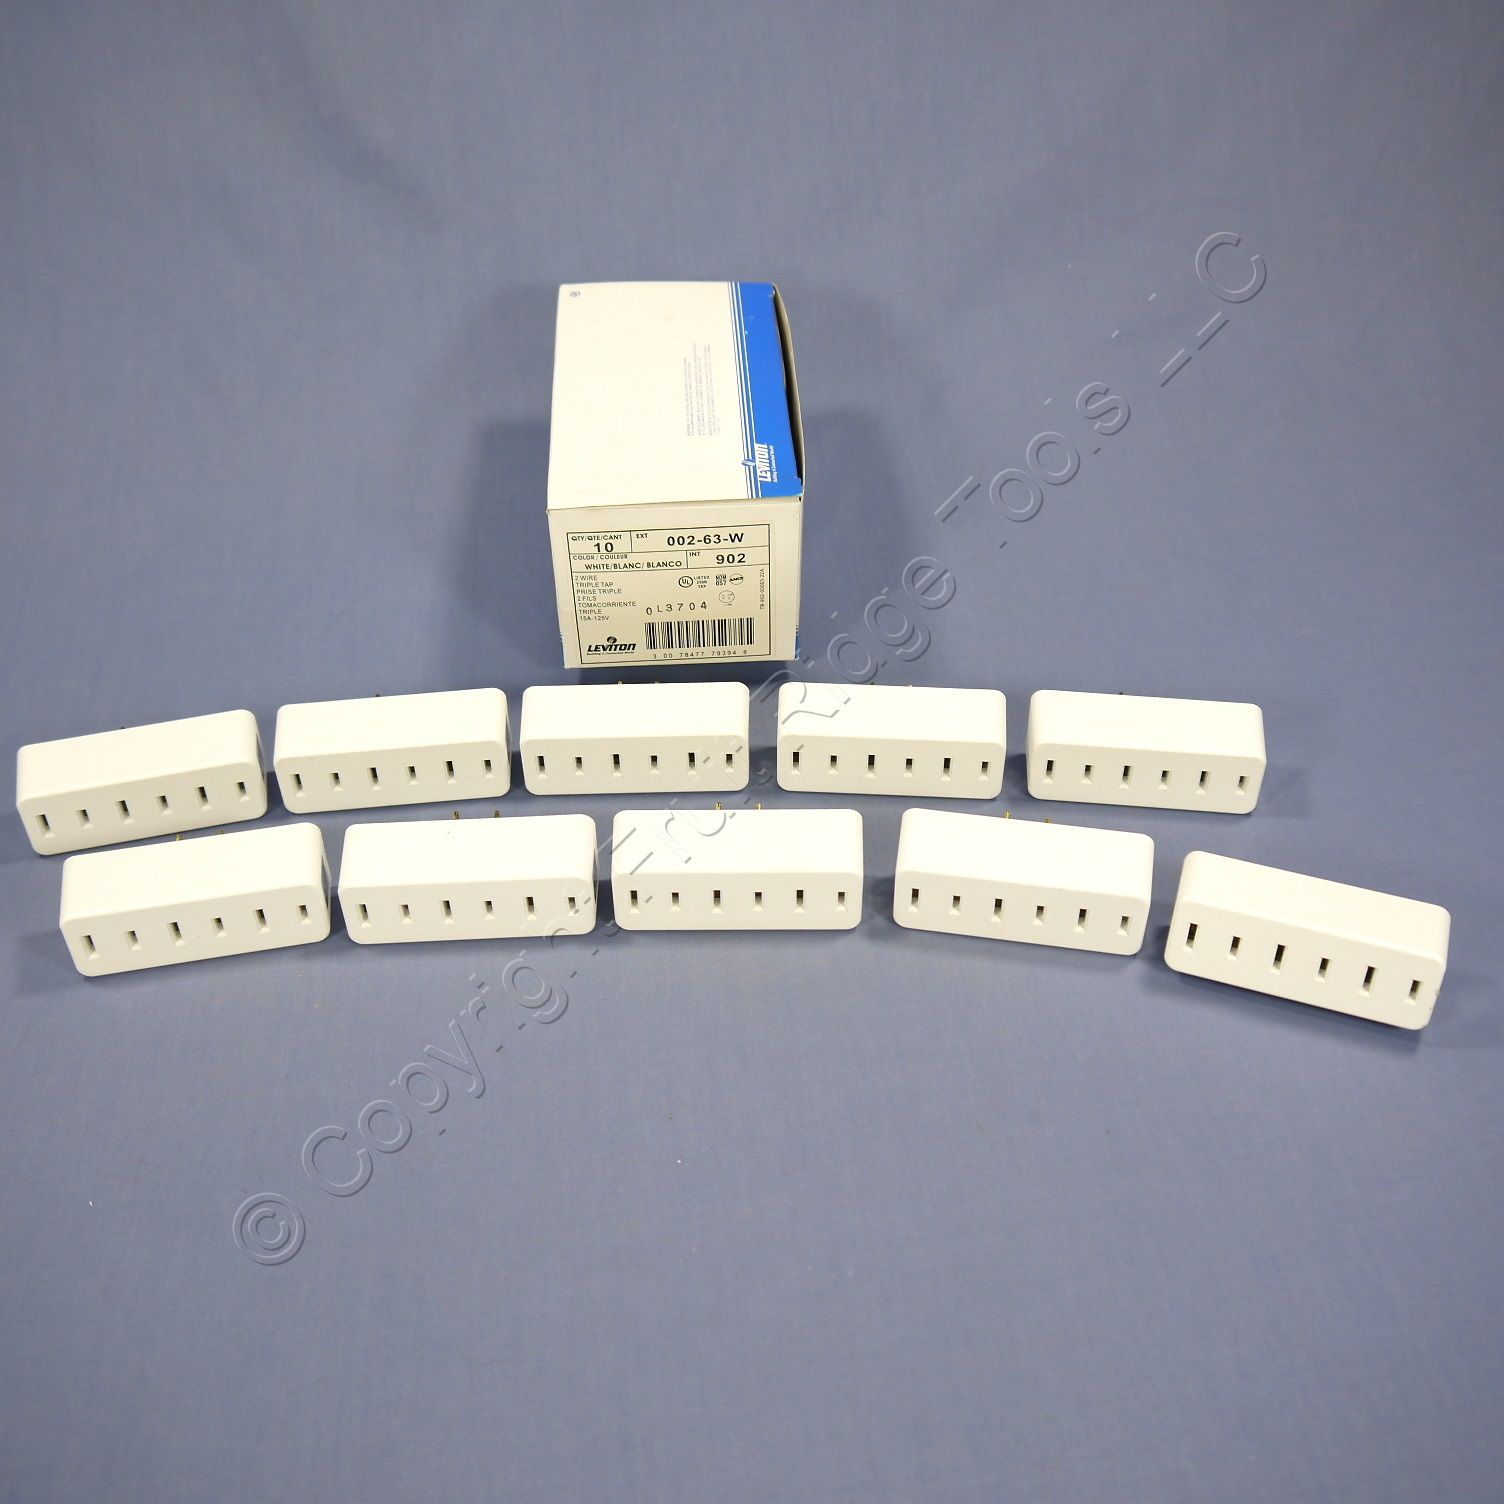 10 Leviton White Triple Tap Outlet Adapters NEMA 1-15R 15A 125V 63-W